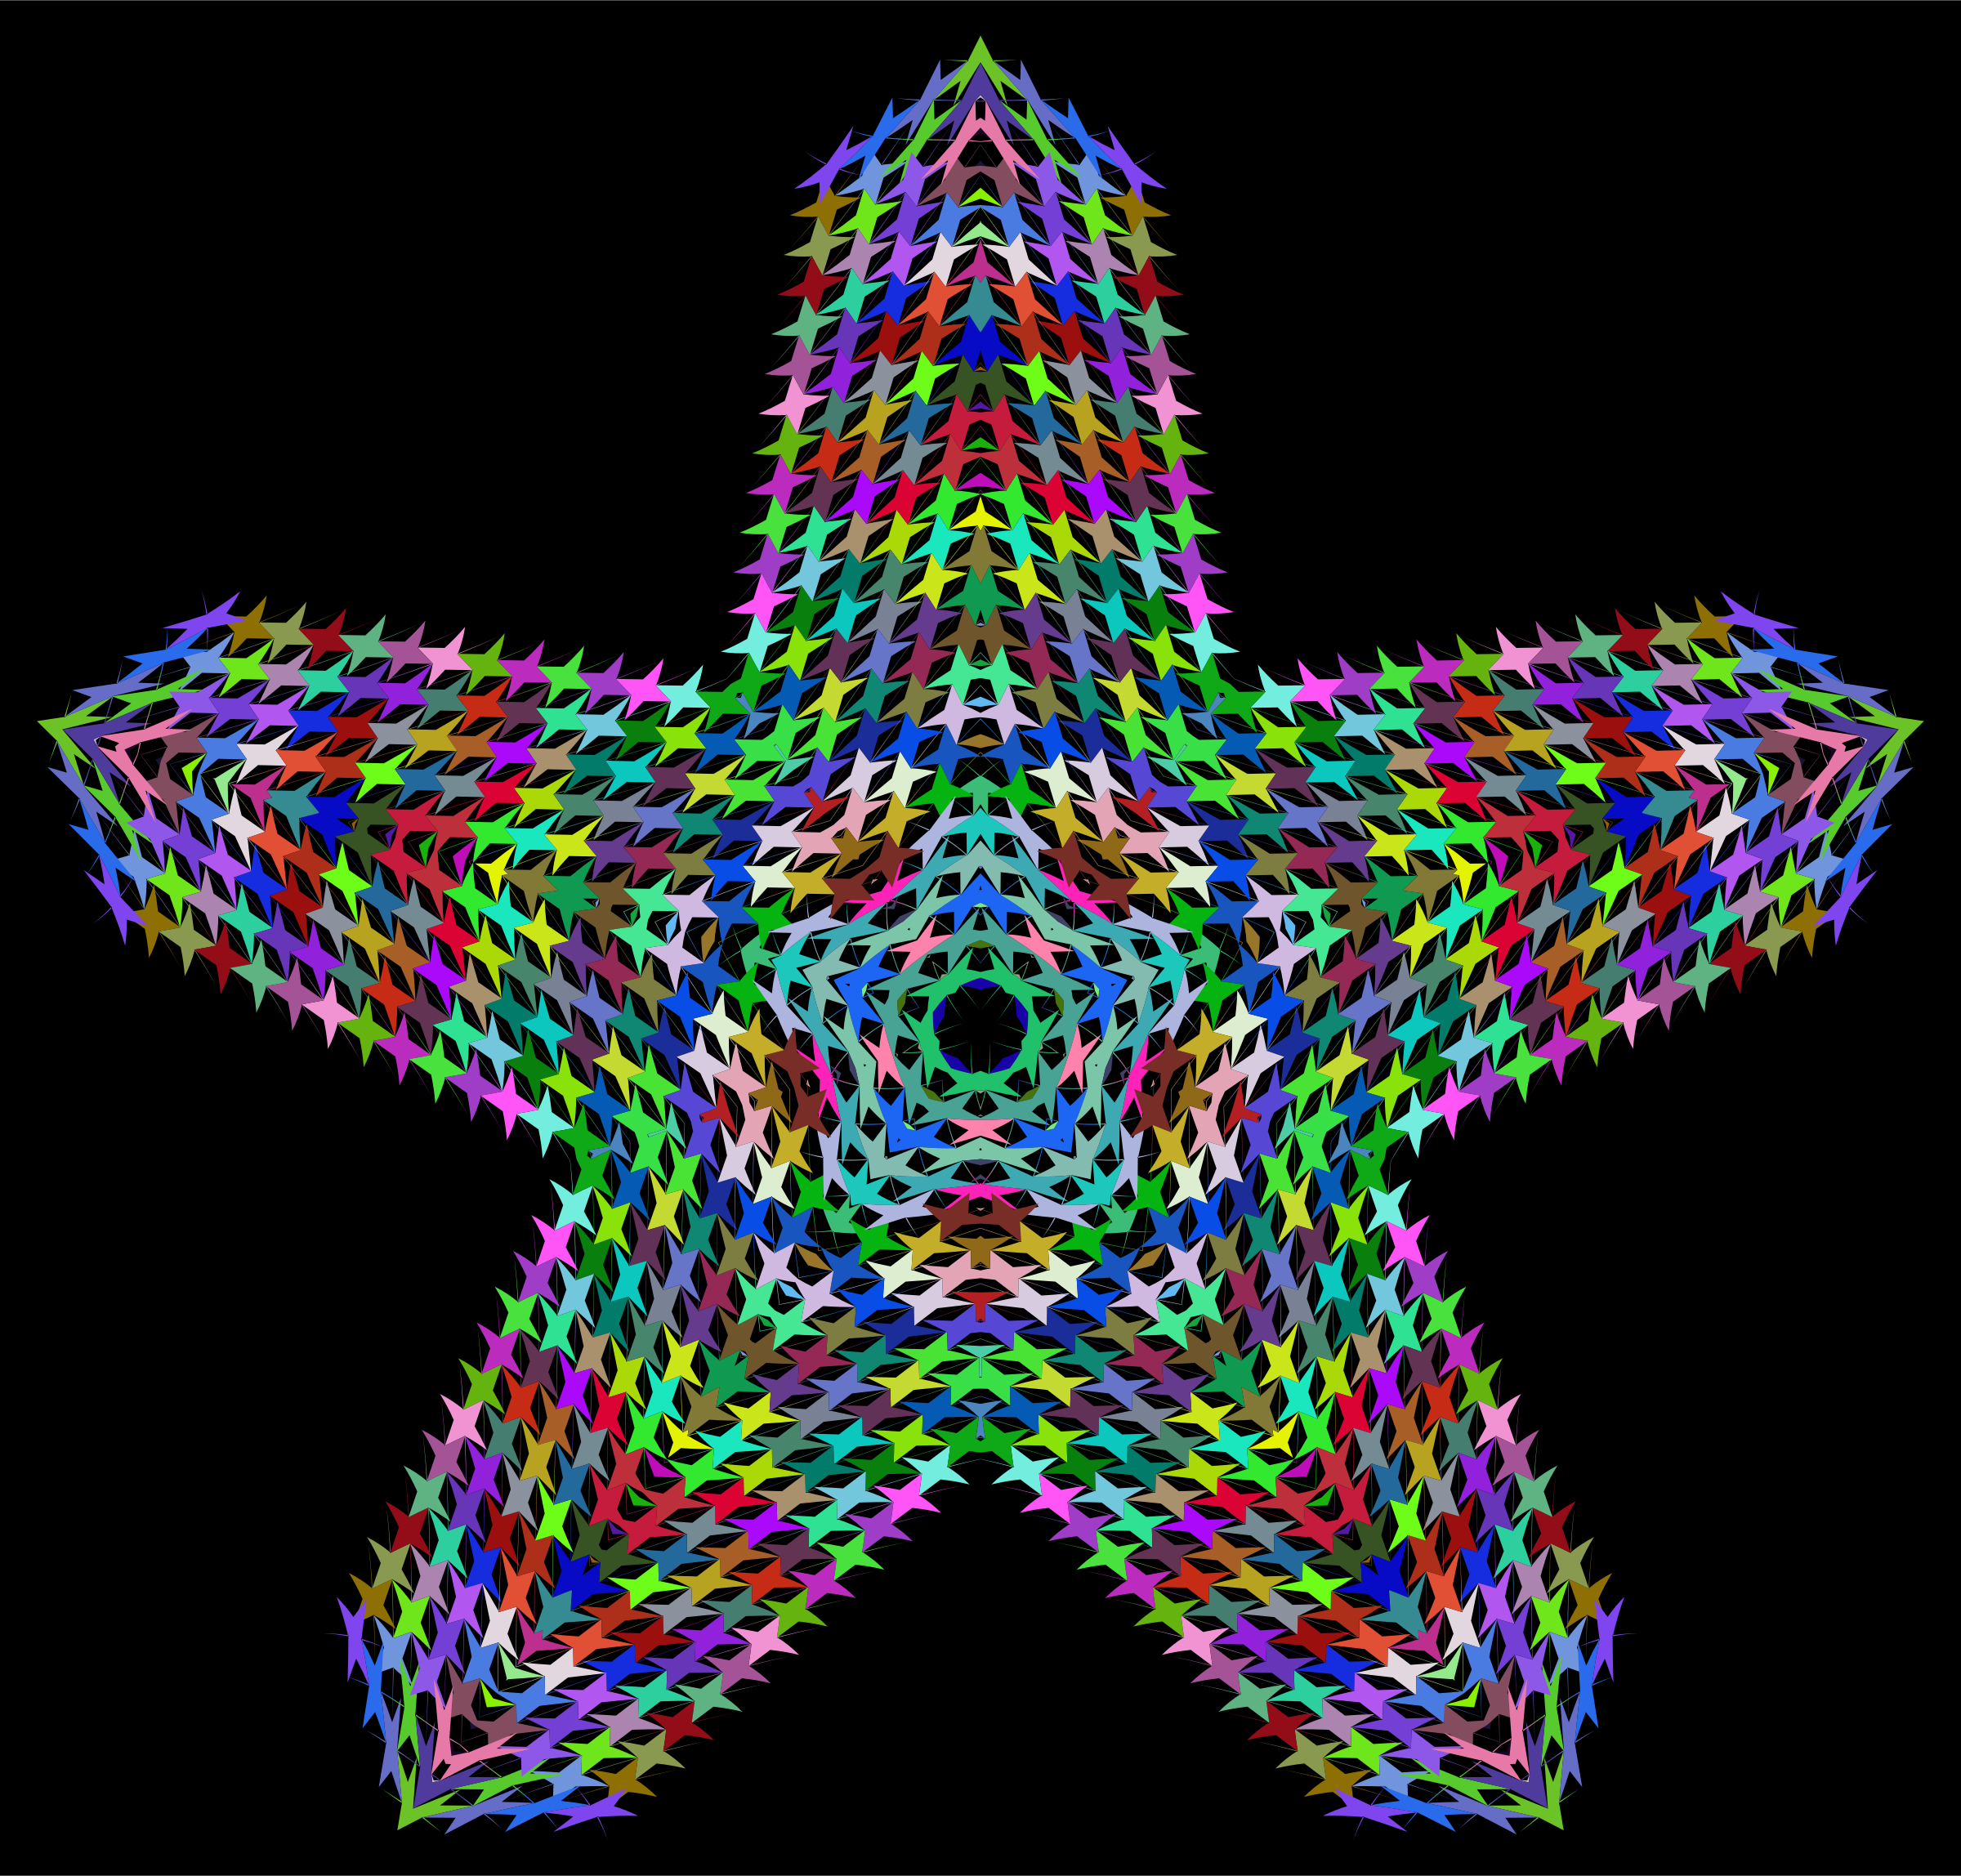 Prismatic Perforated Star by GDJ